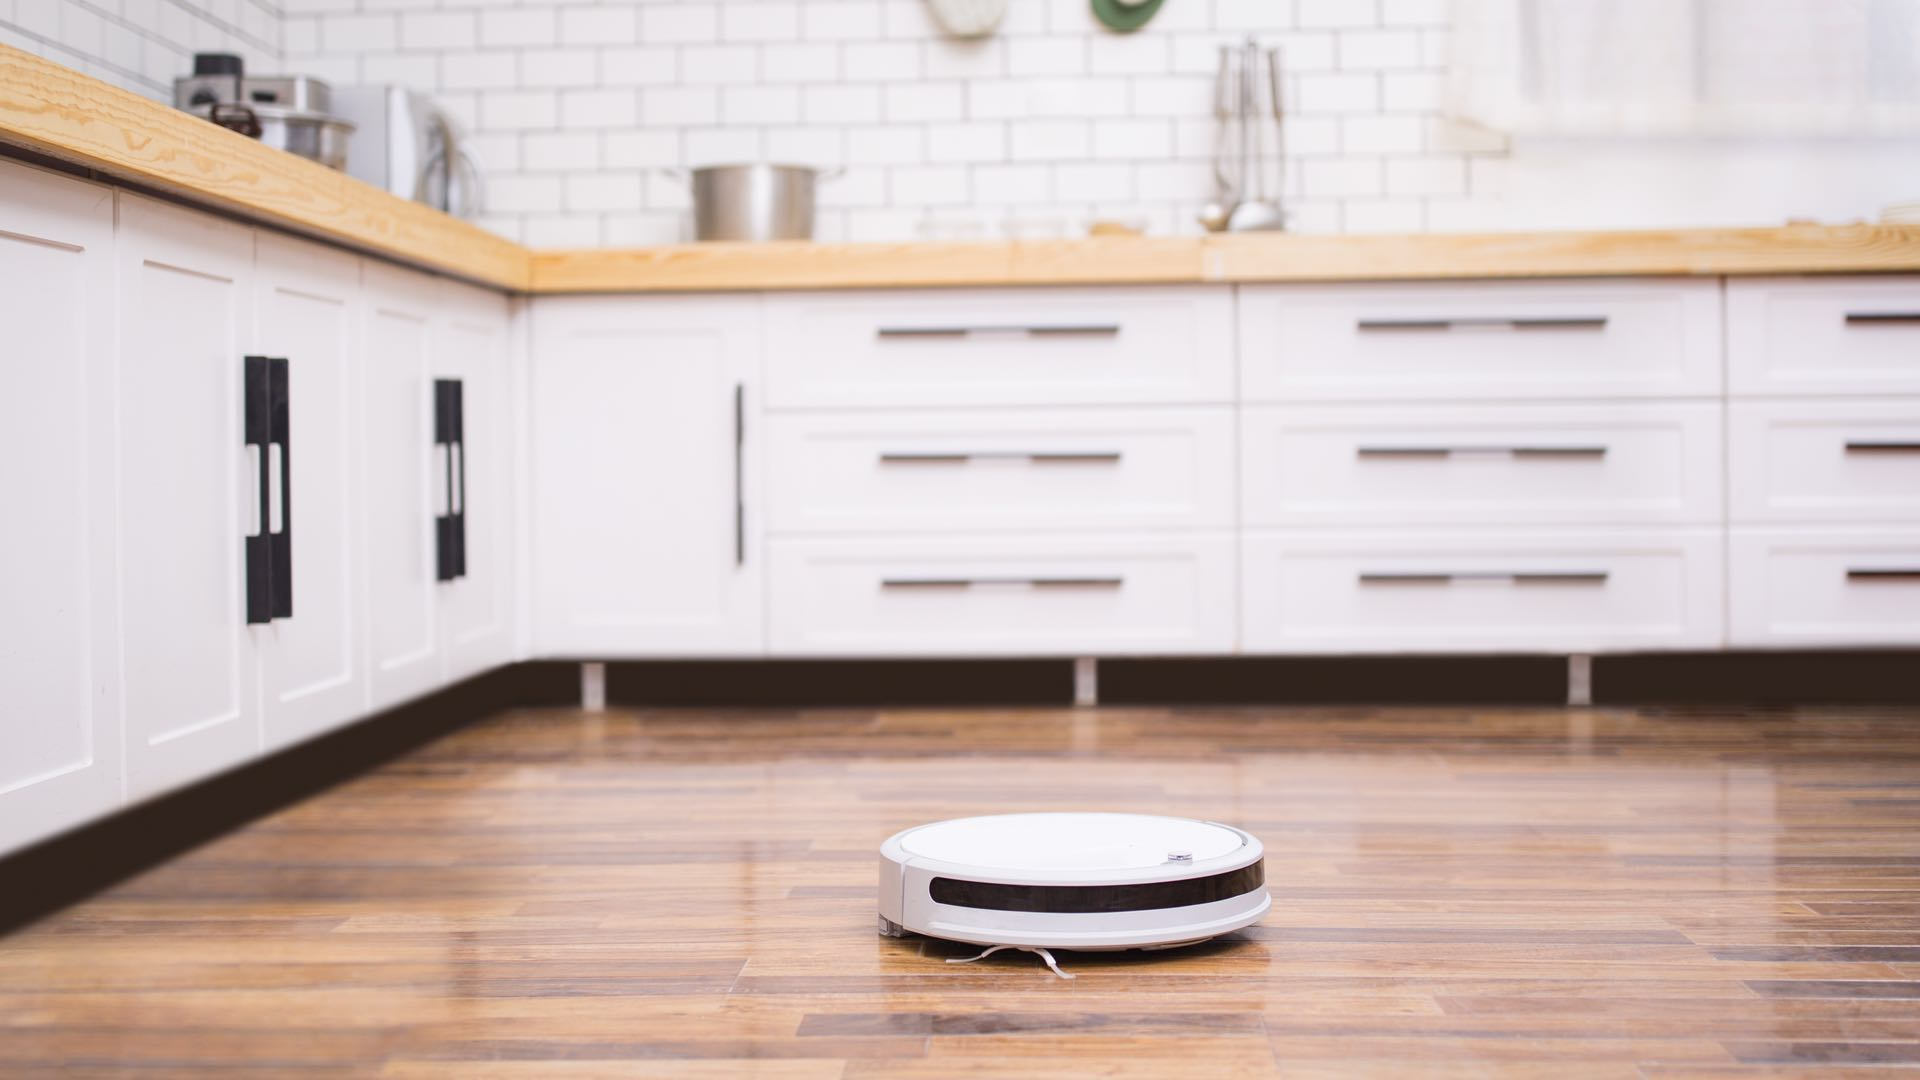 We're giving away four Roborock C10 Robot Vacuum Cleaners, plus $50 off for everyone else [US & UK]